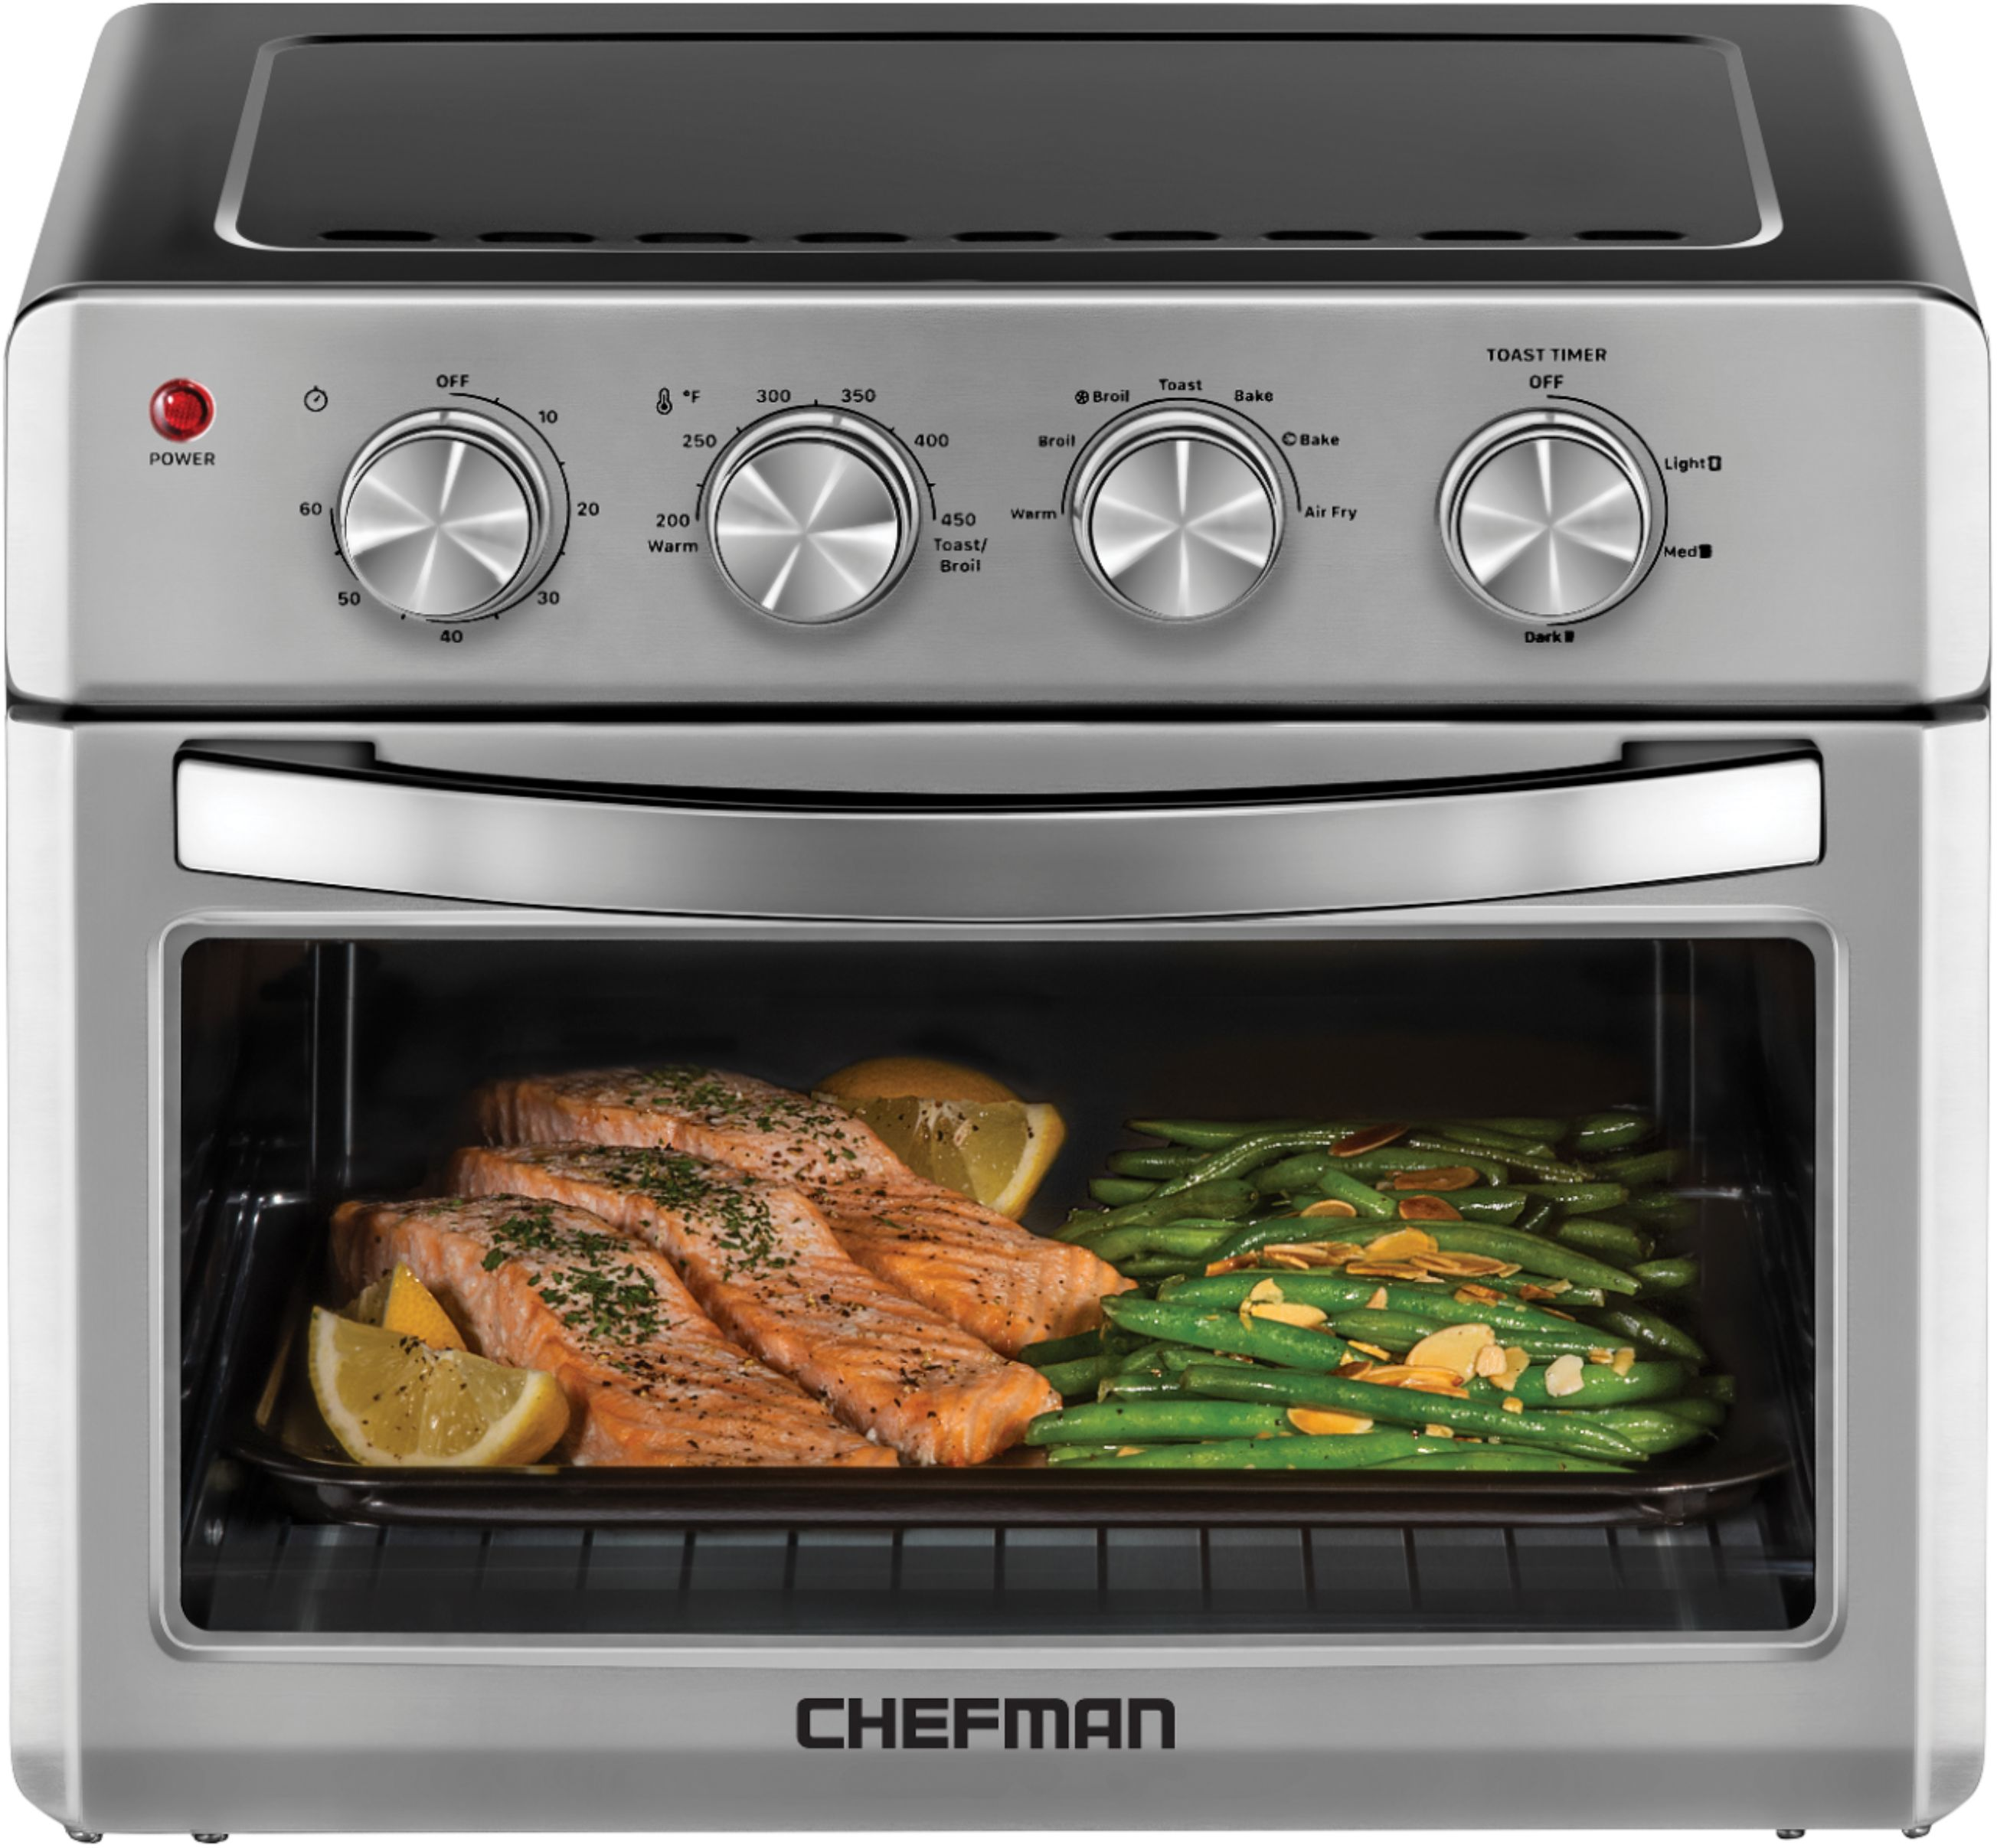 chefman 25 l analog air fryer toaster oven 6 slice convection w auto shut off 60 min timer stainless steel black stainless steel